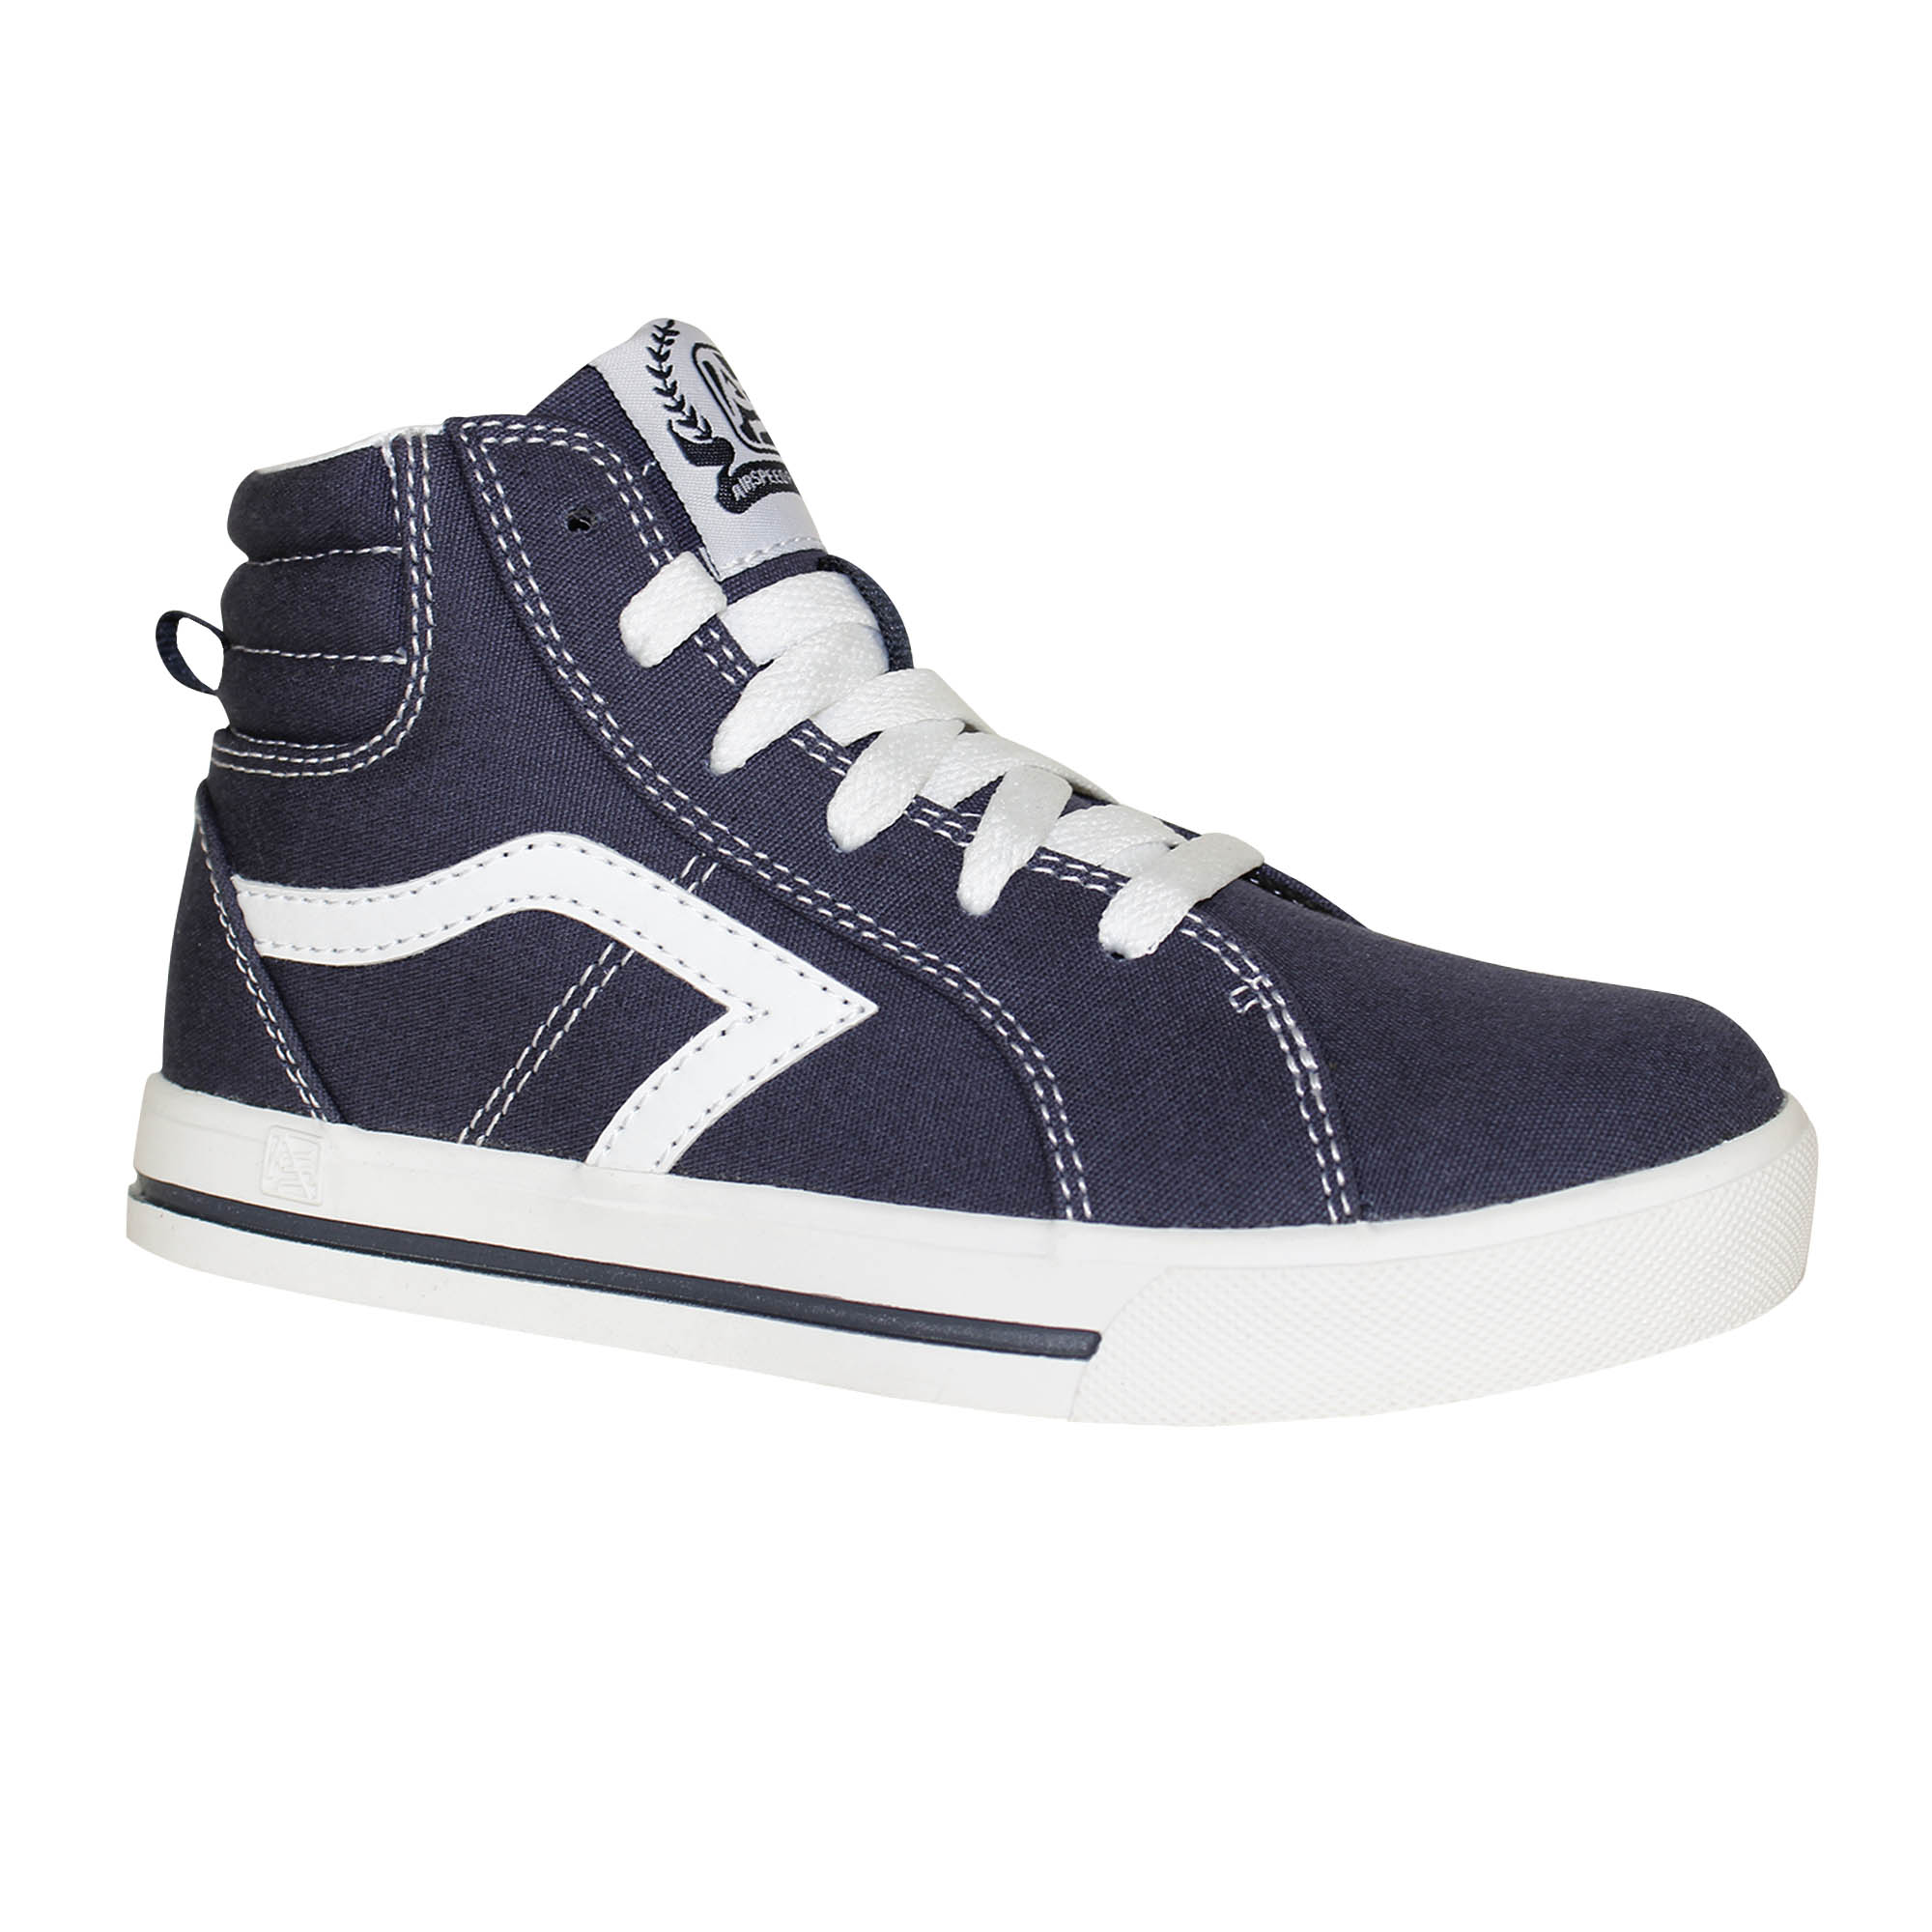 Image of Air Speed Boys' Canvas Mid-Top Sneaker